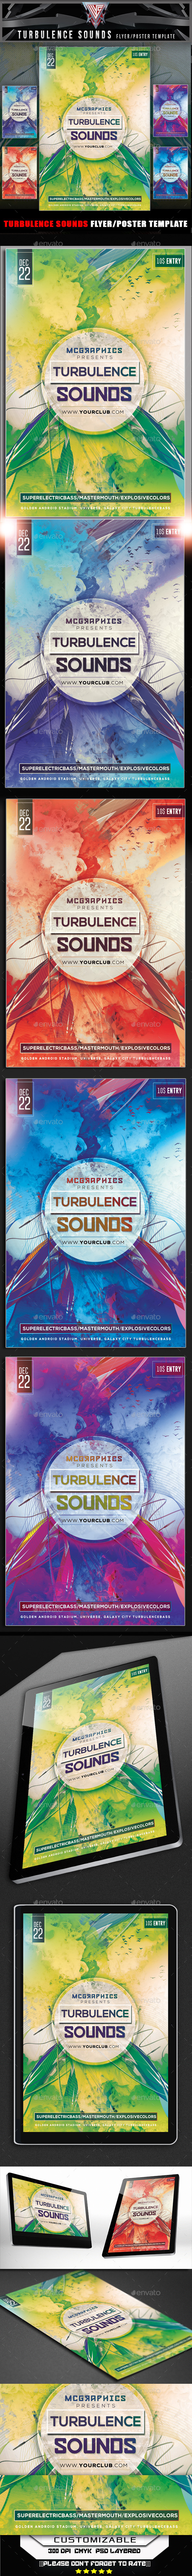 Turbulence Sounds Flyer Template - Flyers Print Templates